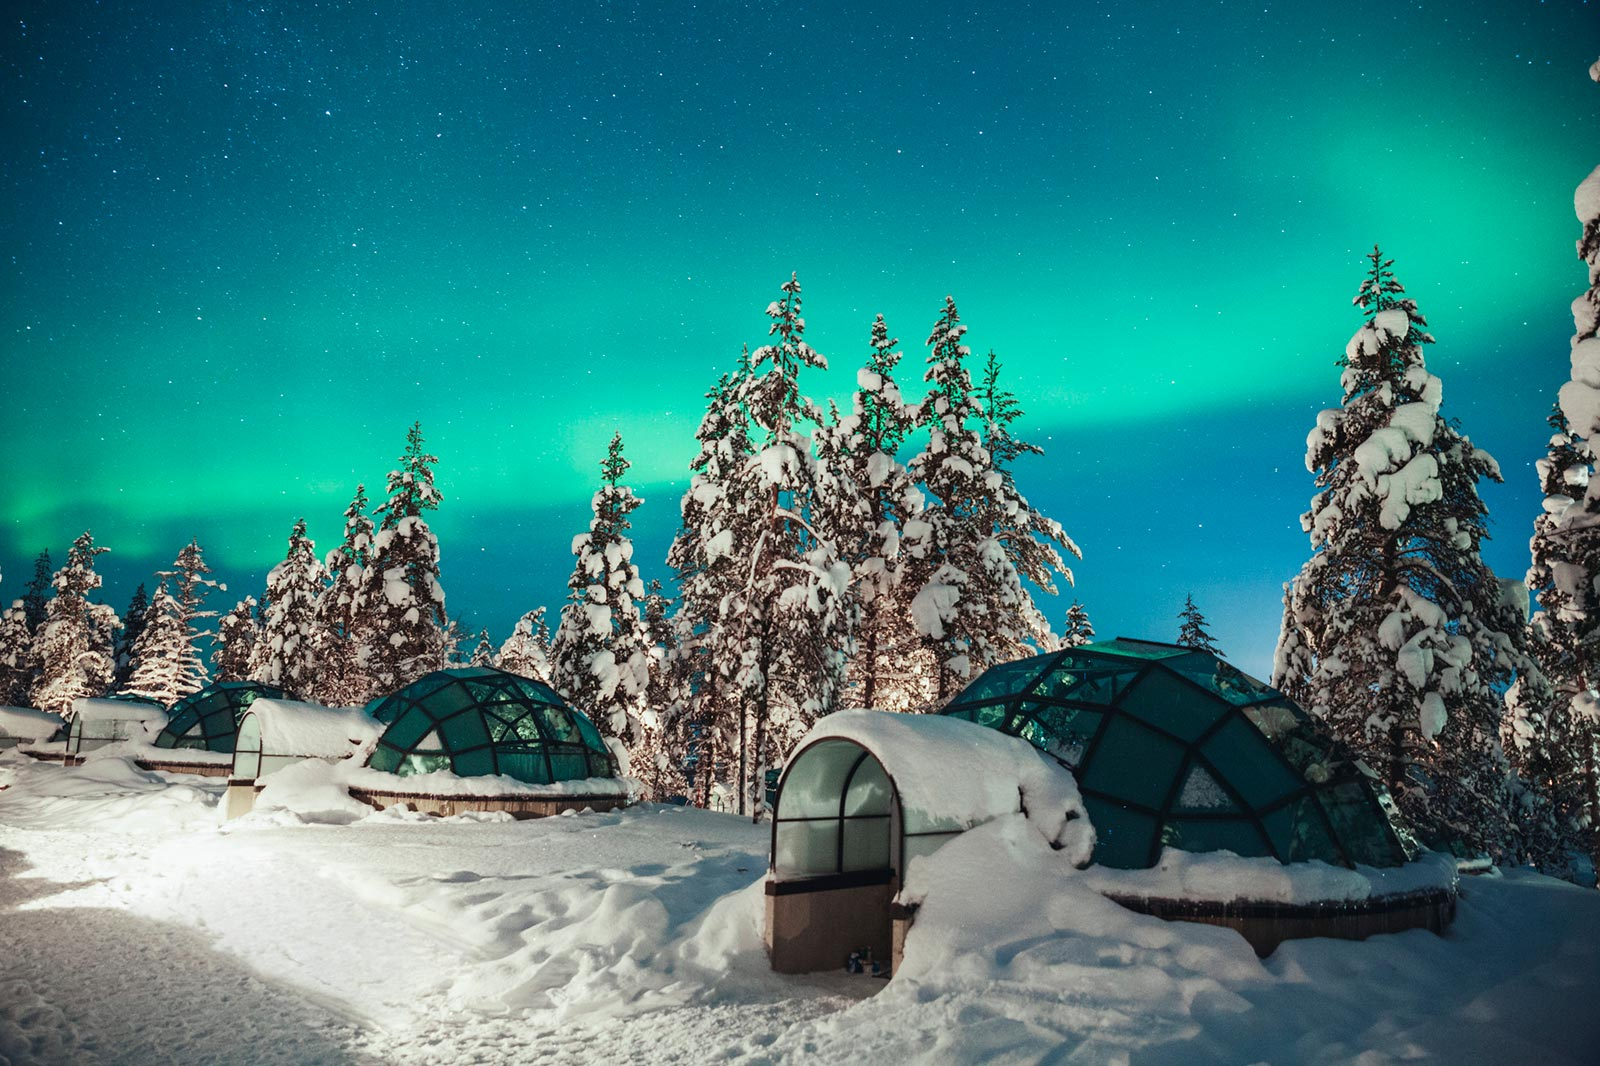 Aurora Boreale Finlandia Kakslauttanen Glass Igloo Northern Lights